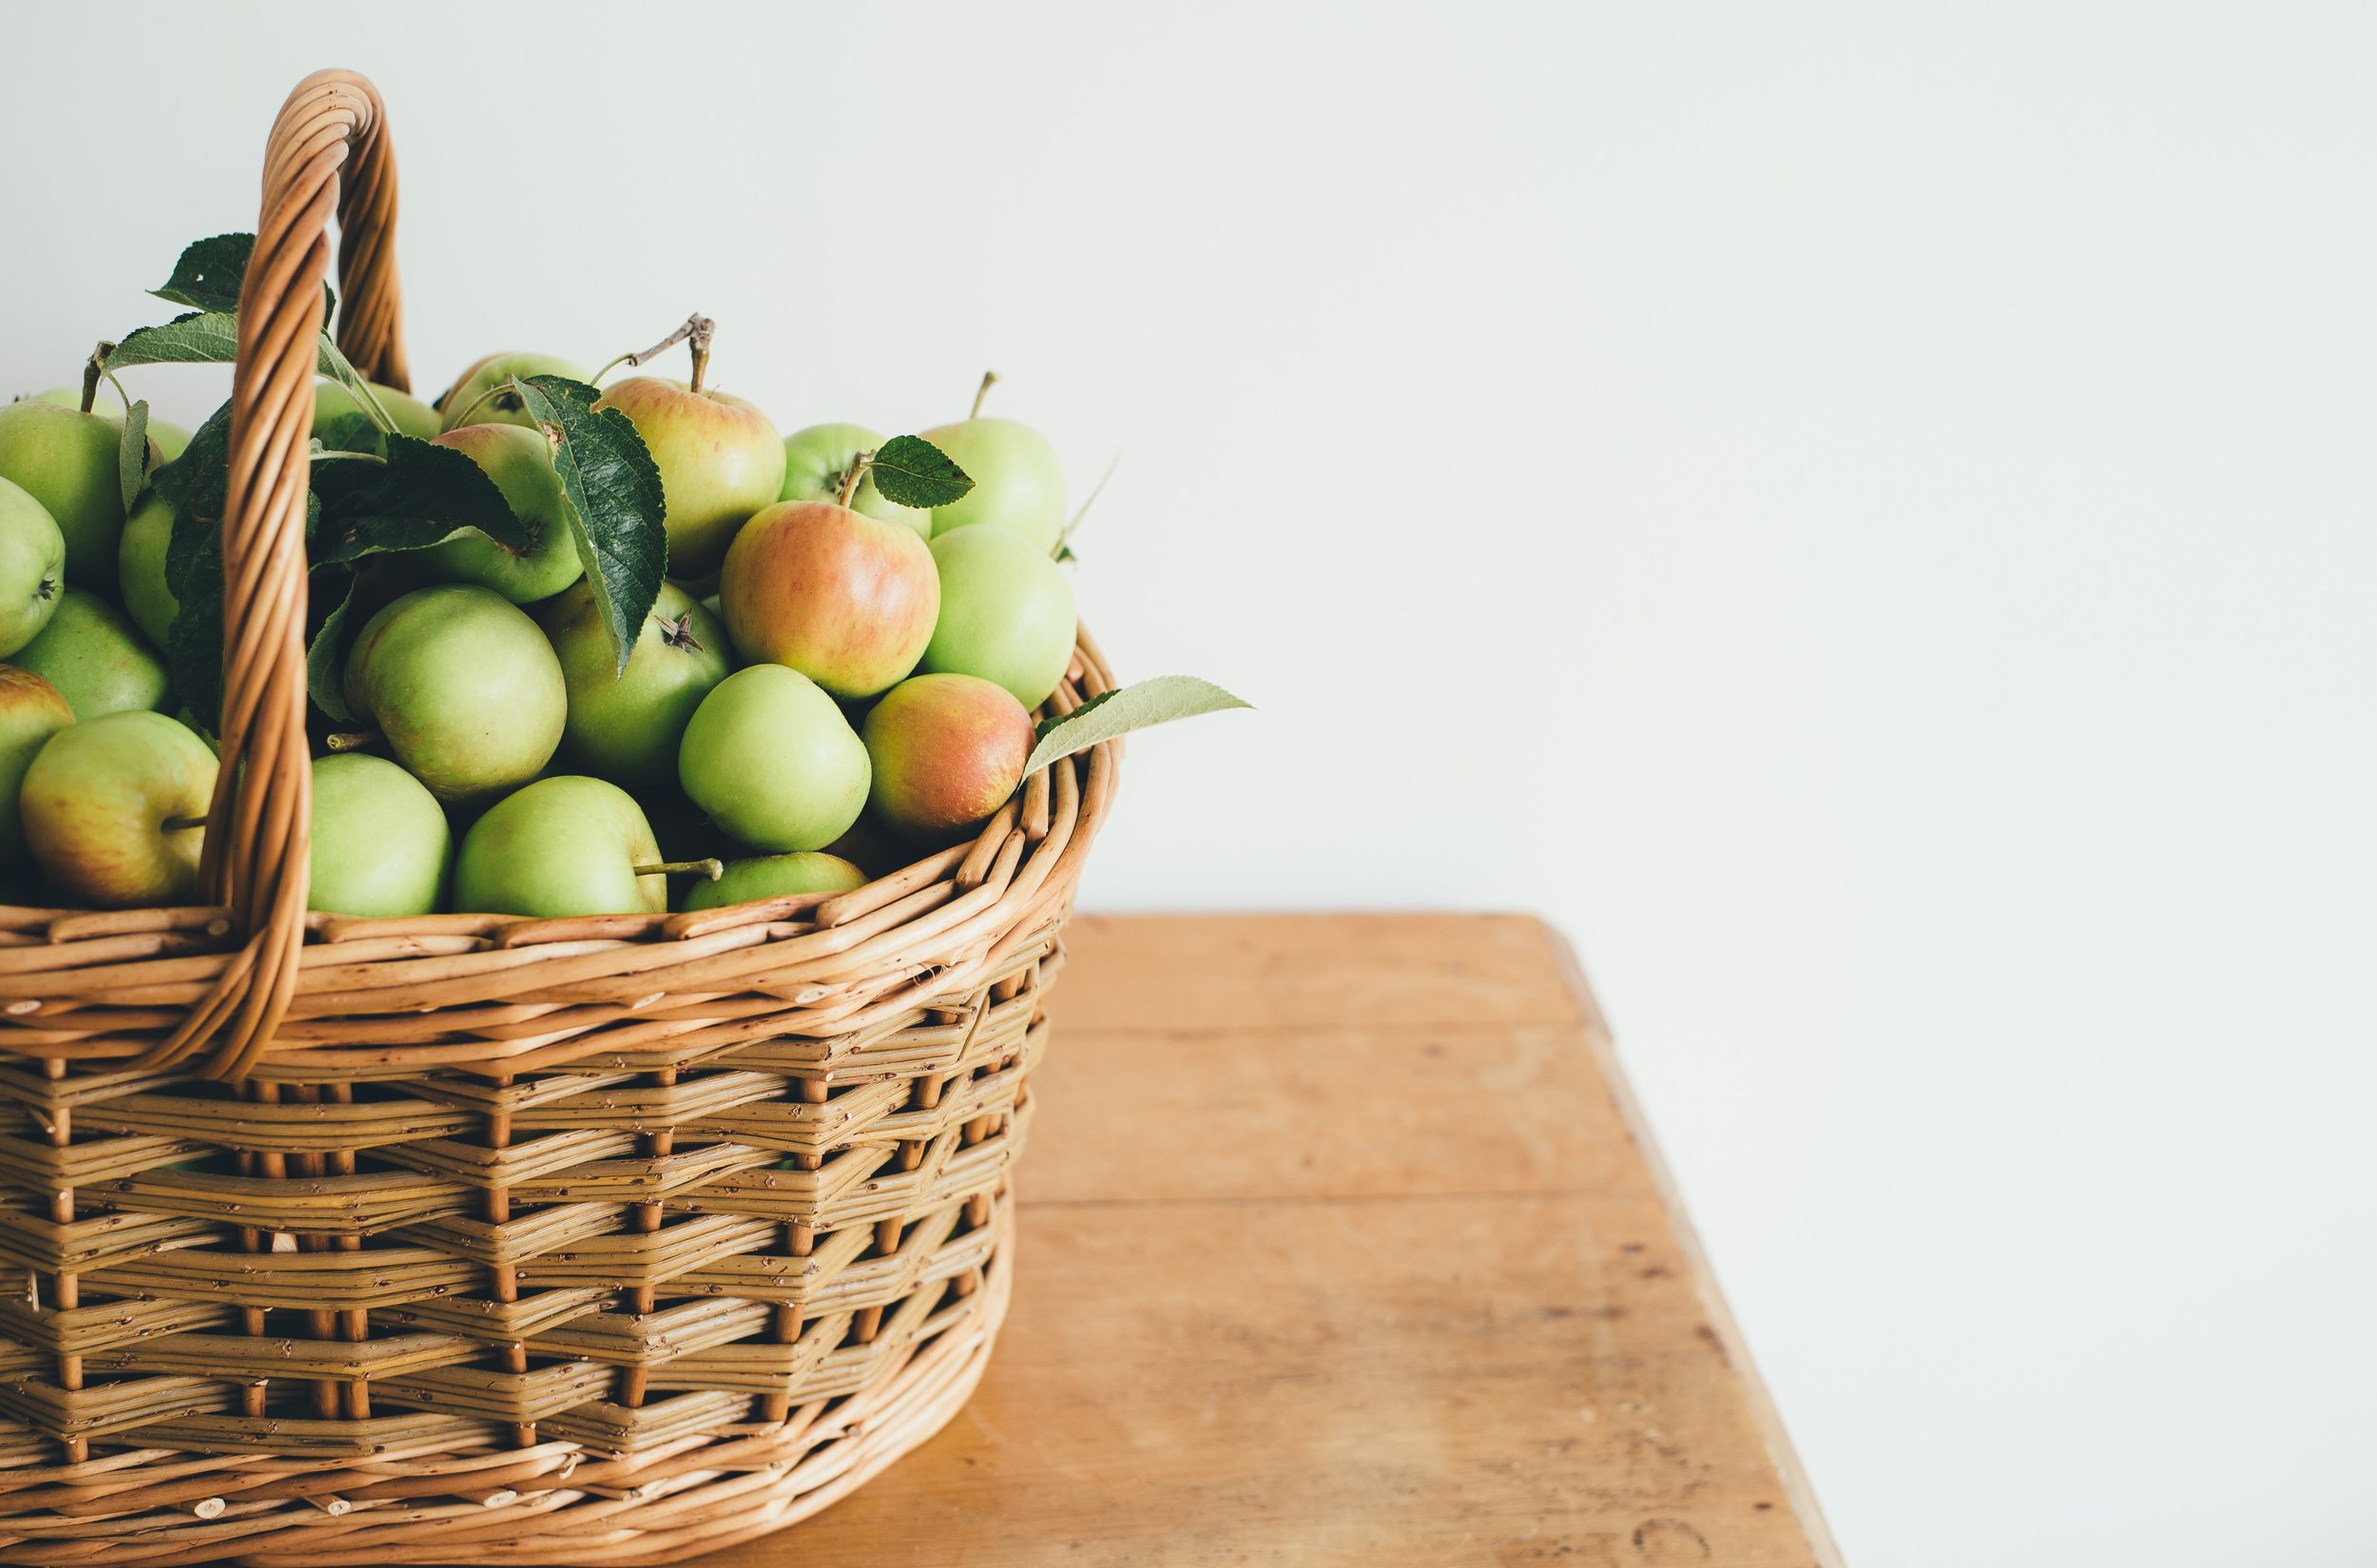 apple basket.jpg